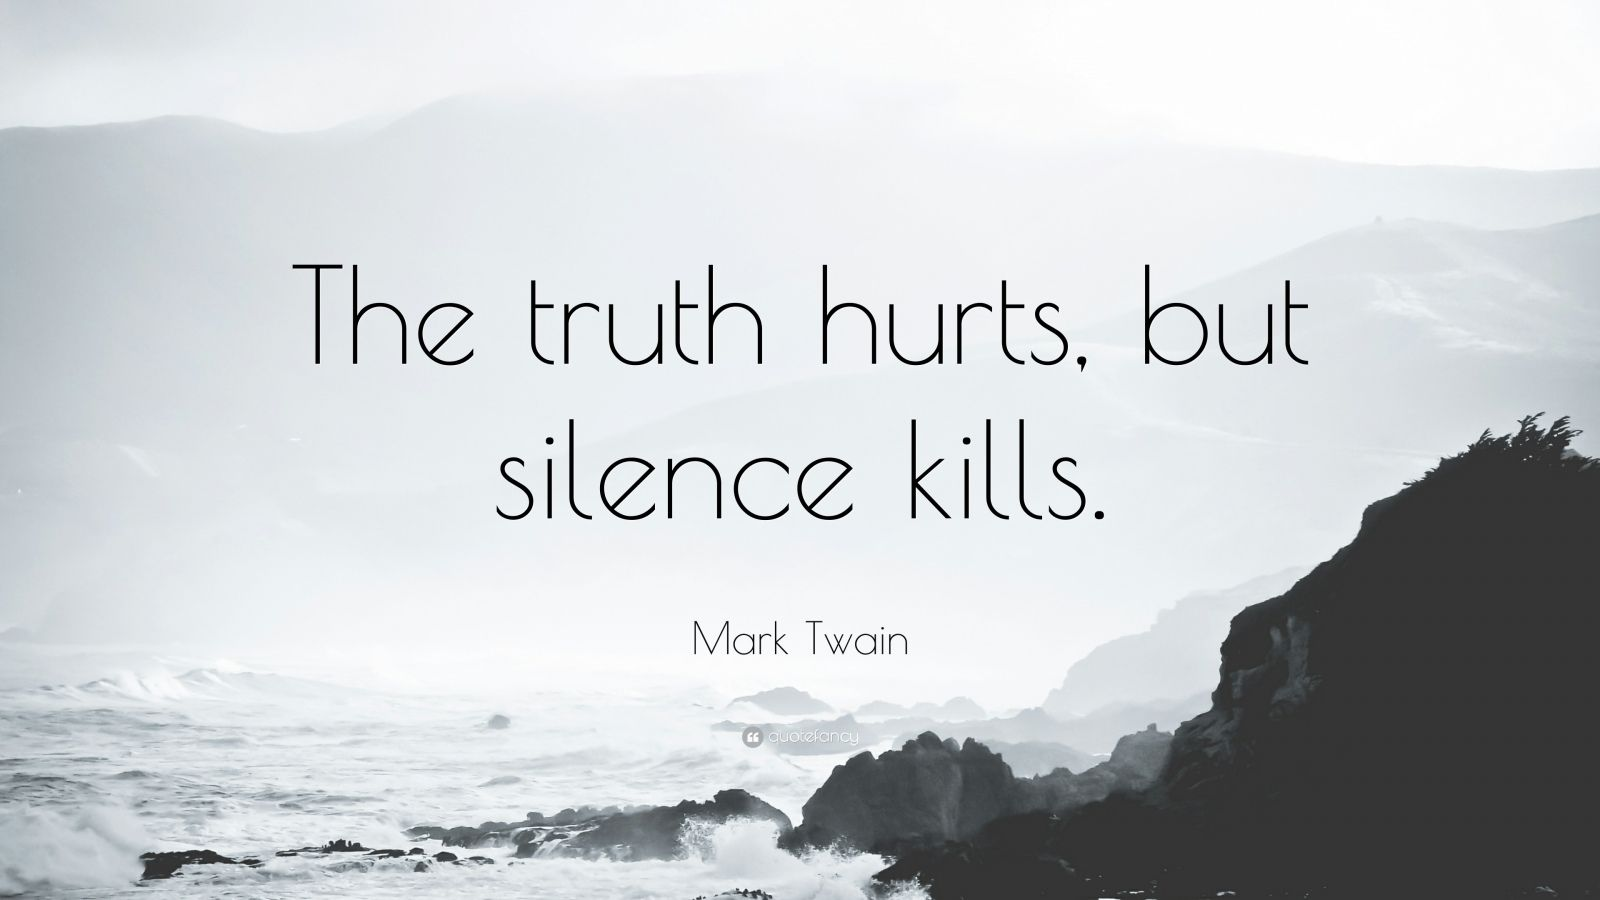 469376-Mark-Twain-Quote-The-truth-hurts-but-silence-kills.jpg